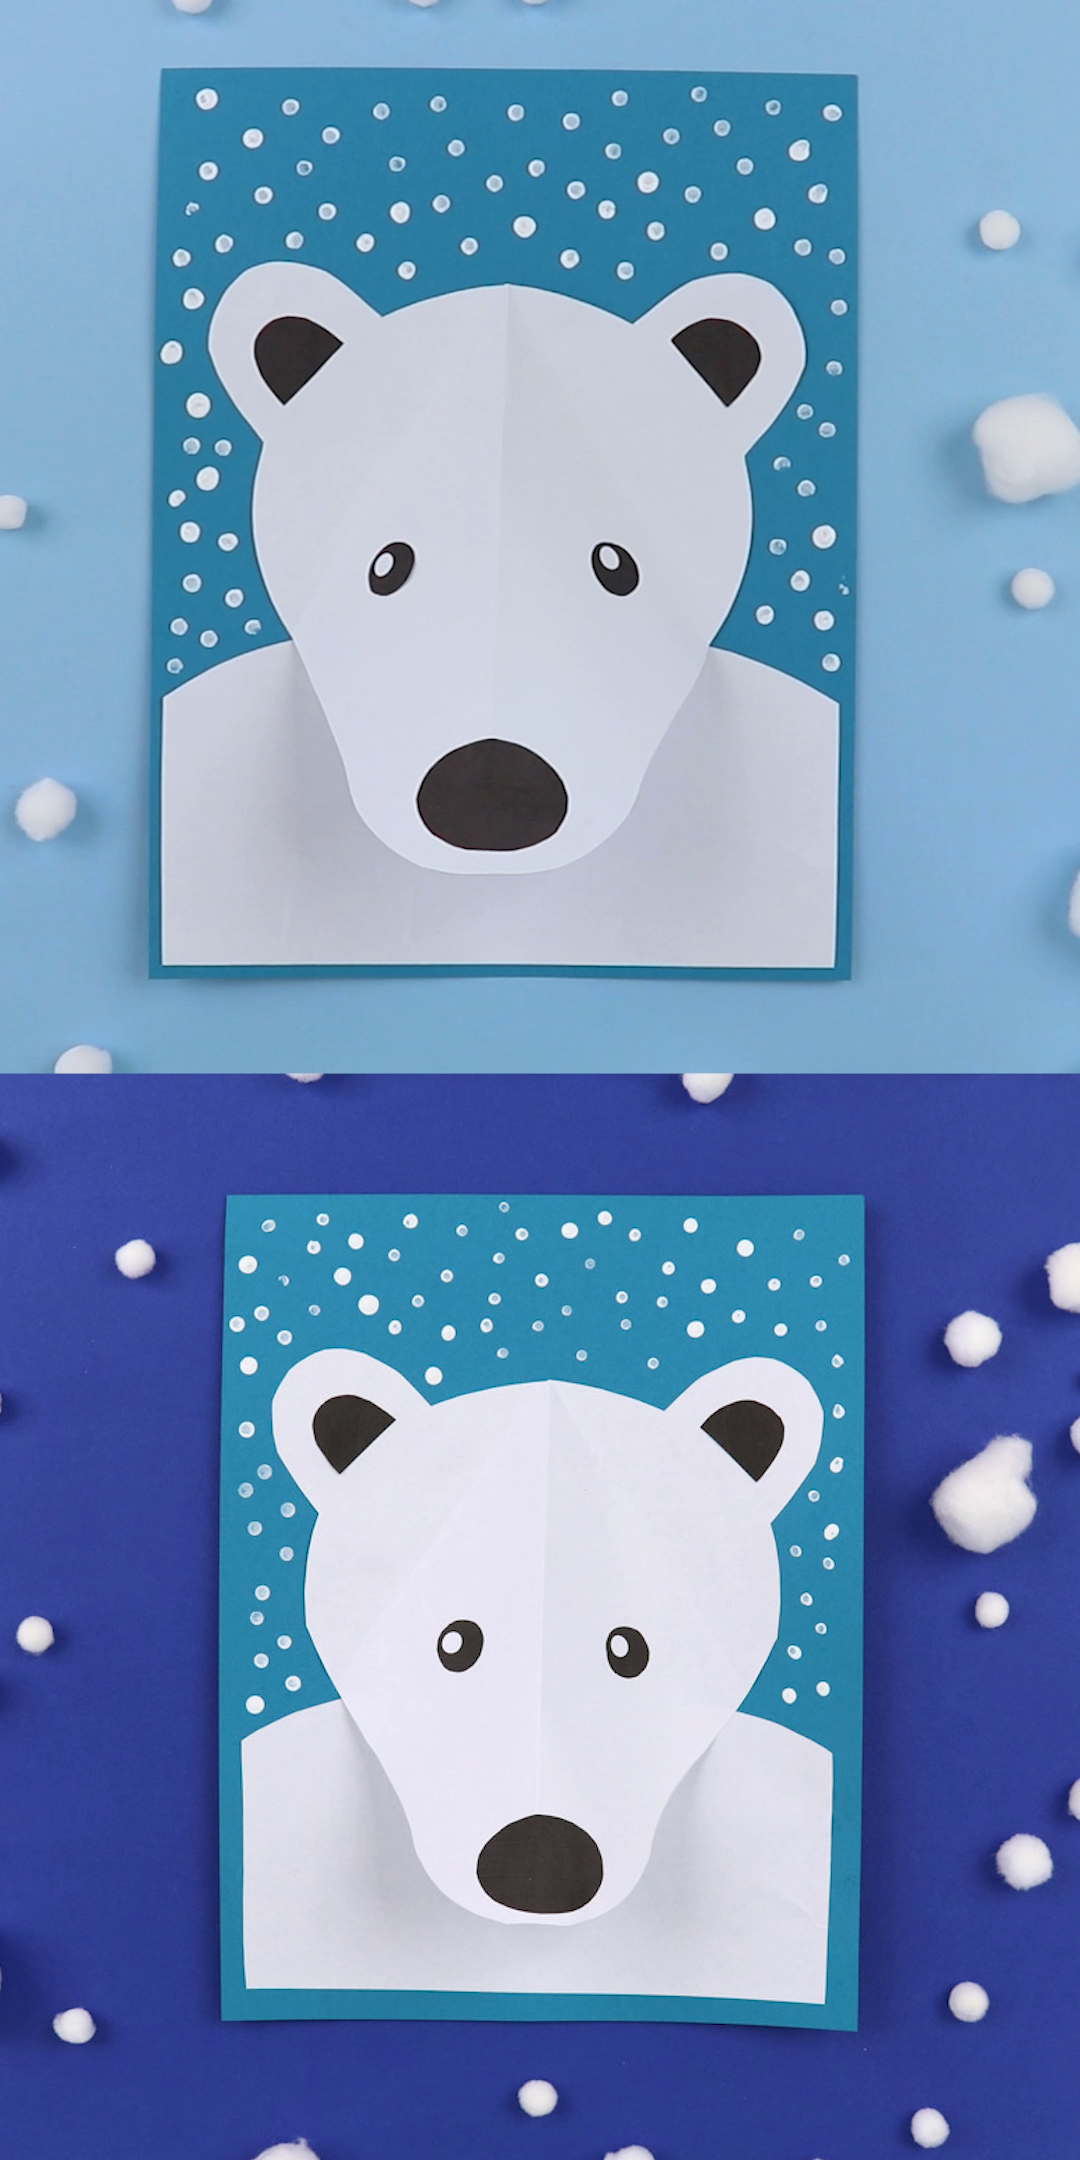 3D Polar bear portrait 3D polar bear paper craft for kids Create a polar bear portrait with a popout nose surrounded by falling snow made from Qtip dots Printable templat...